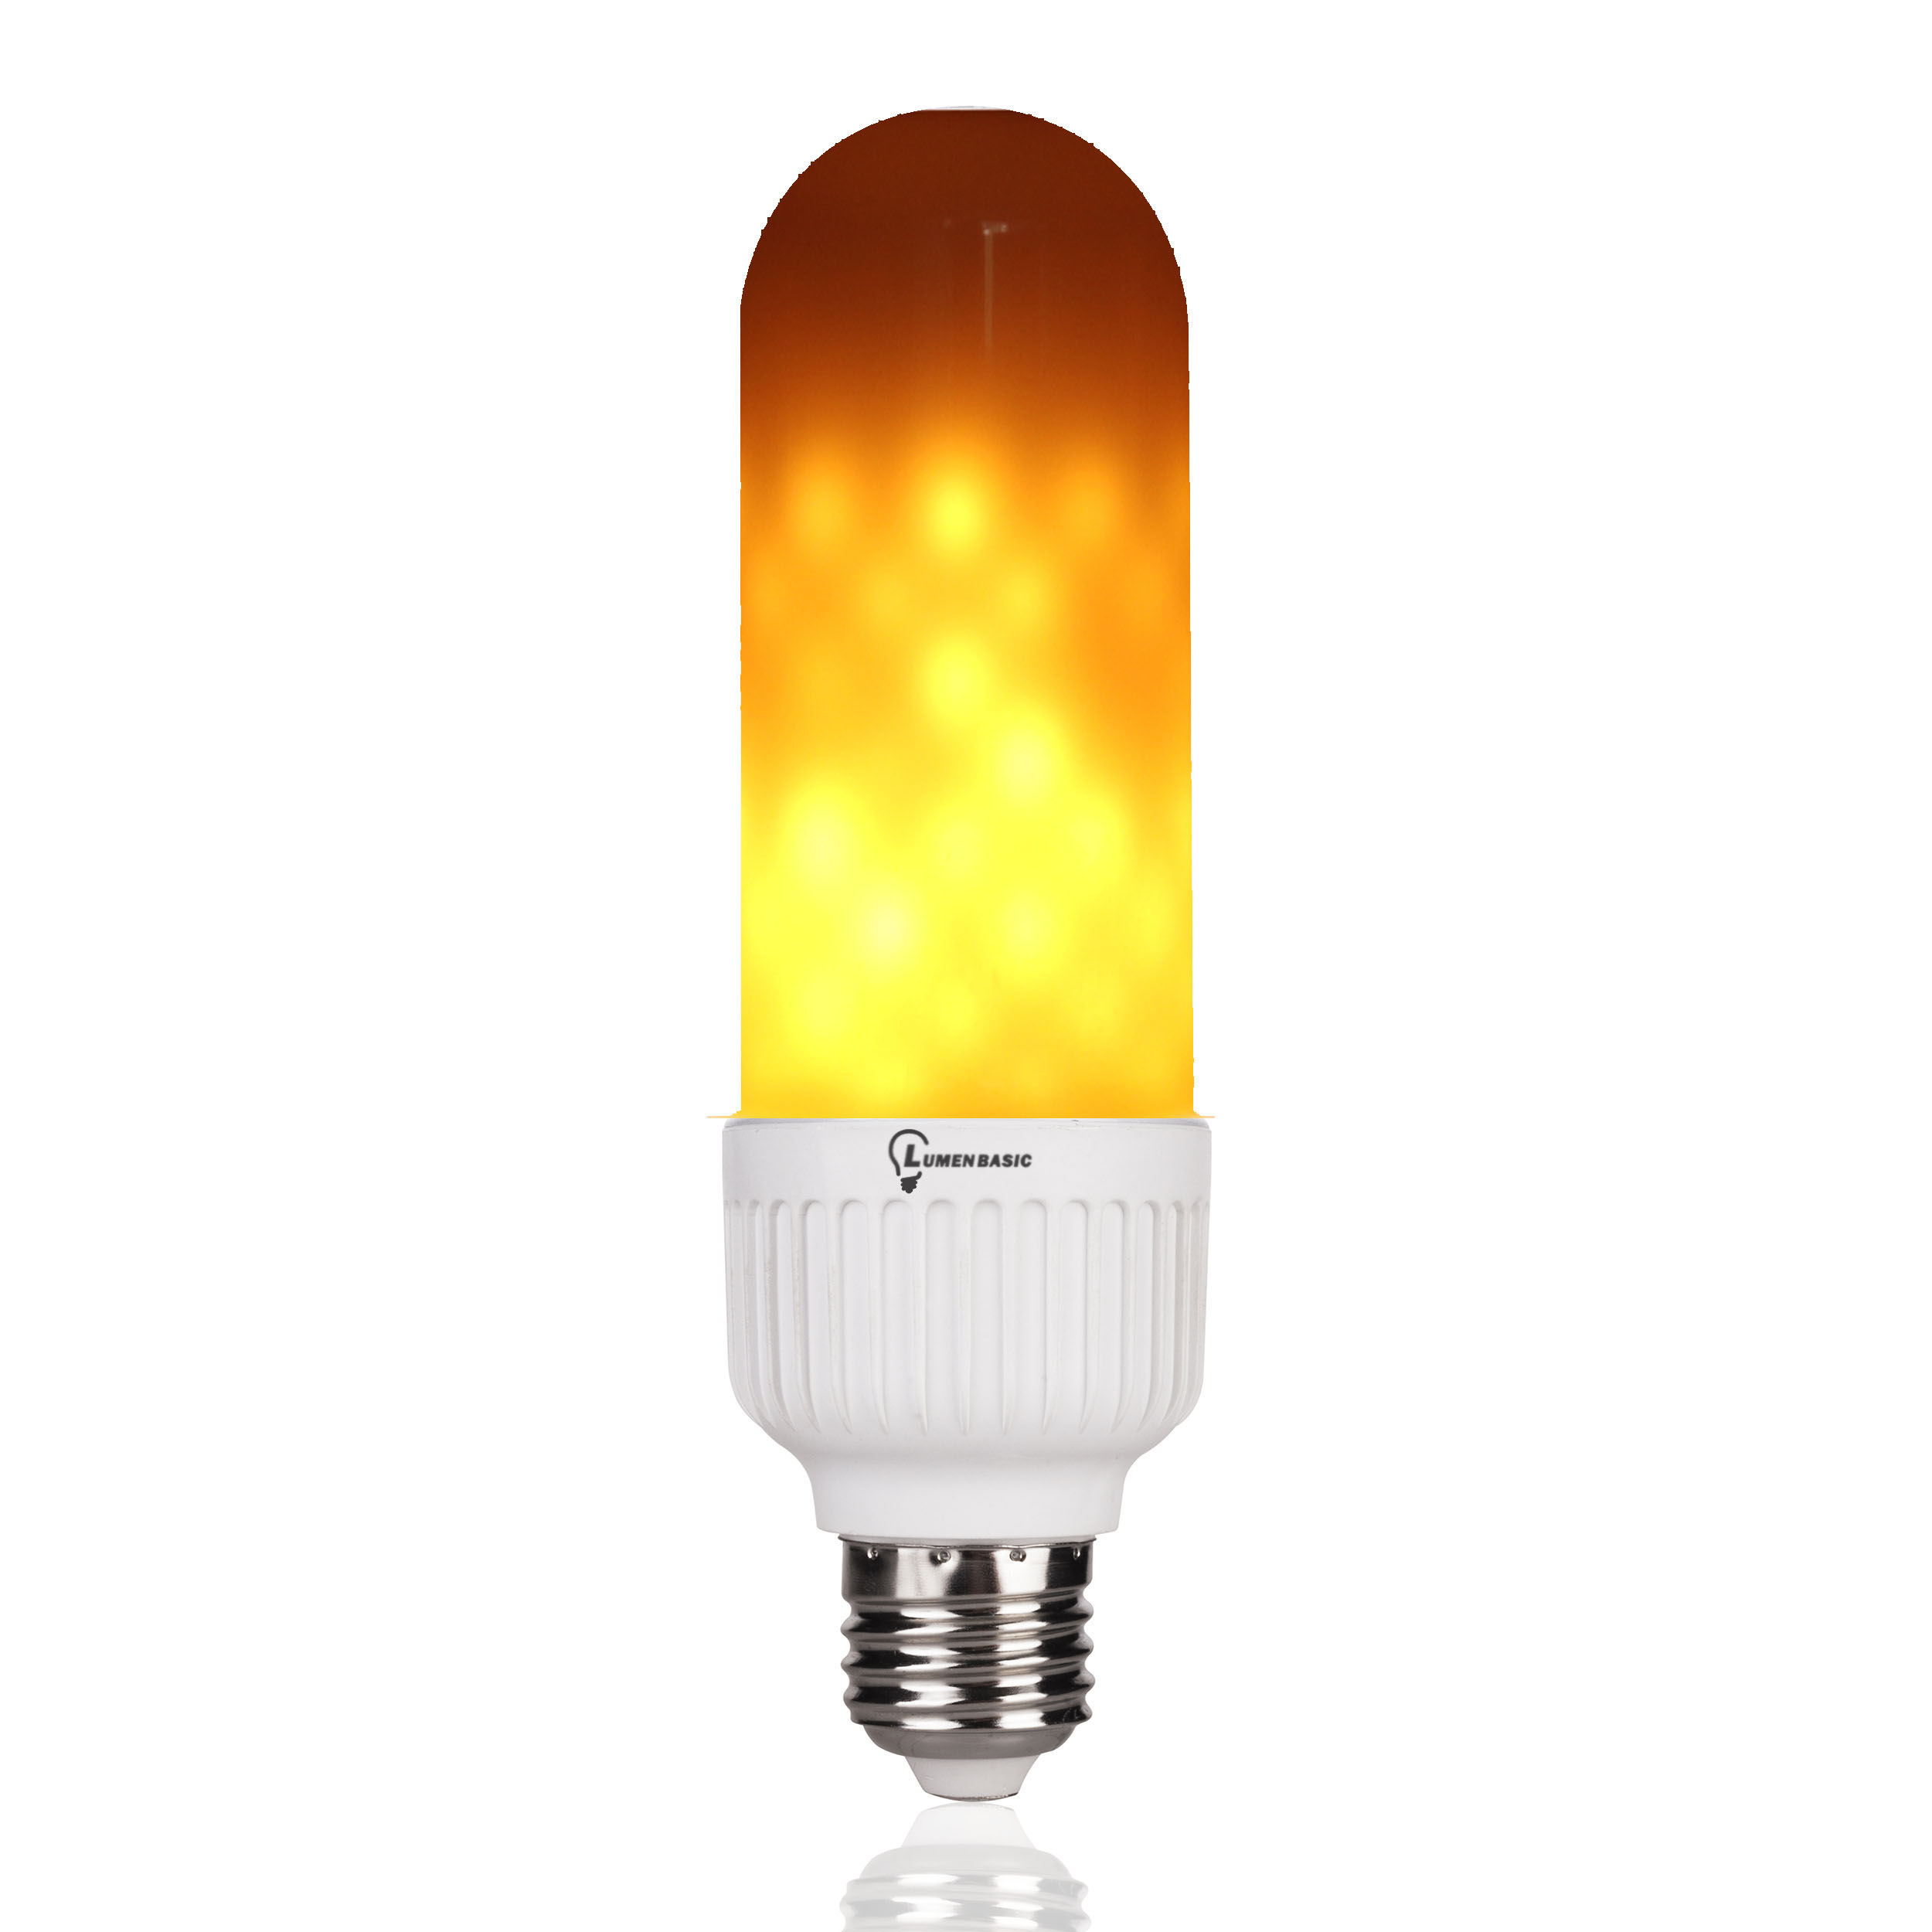 Outdoor Led Light Is Flickering: LumenBasic Flickering Flame Light Bulb E26 LED Flame